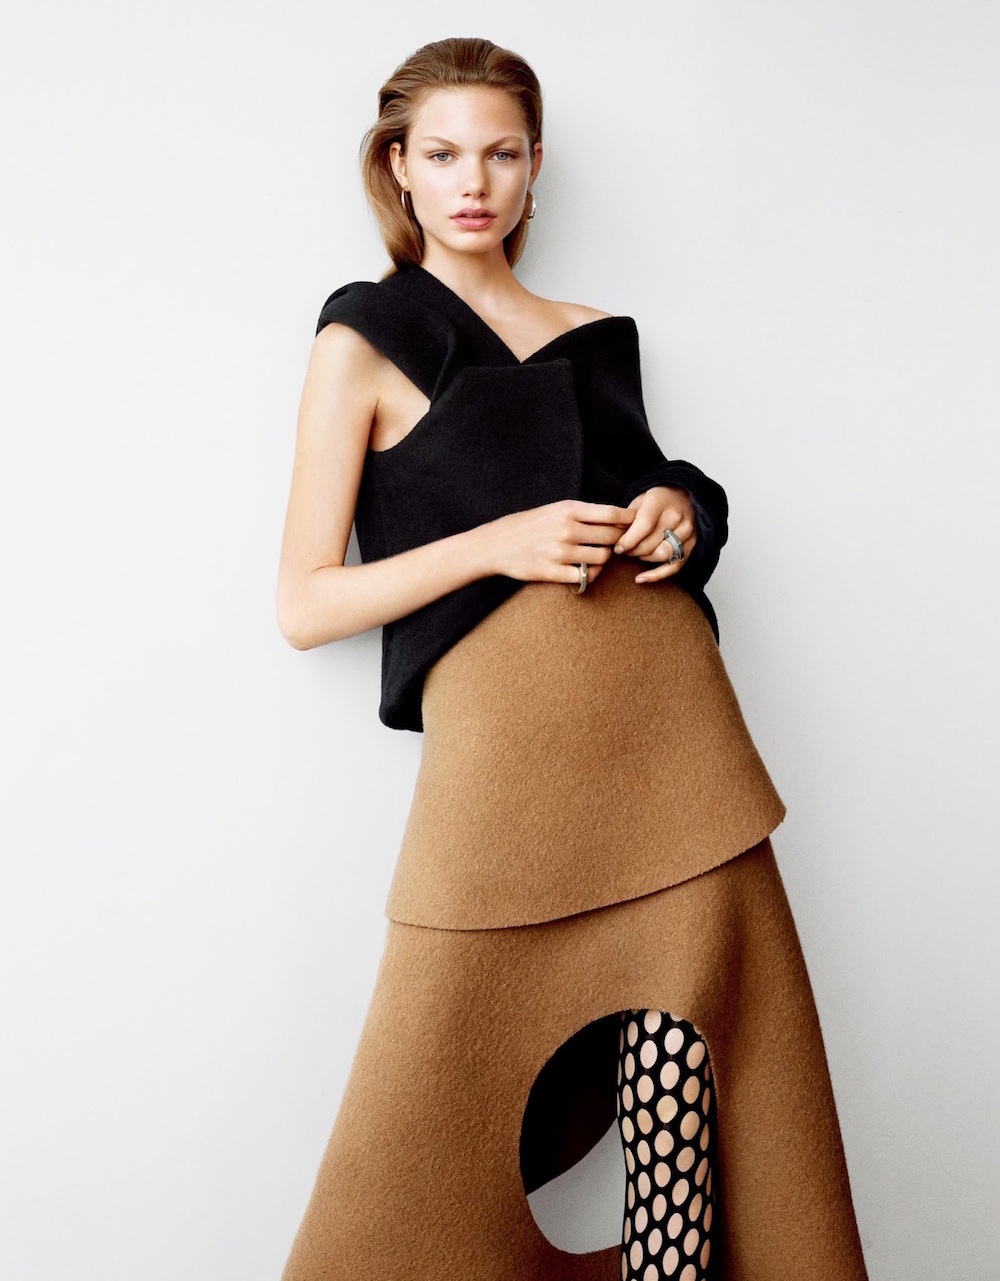 .VOGUE-JAPAN-SEPTEMBER-2015-BY-MACIEK-KOBIELSKI-1-fishnet-trend-oracle-fox